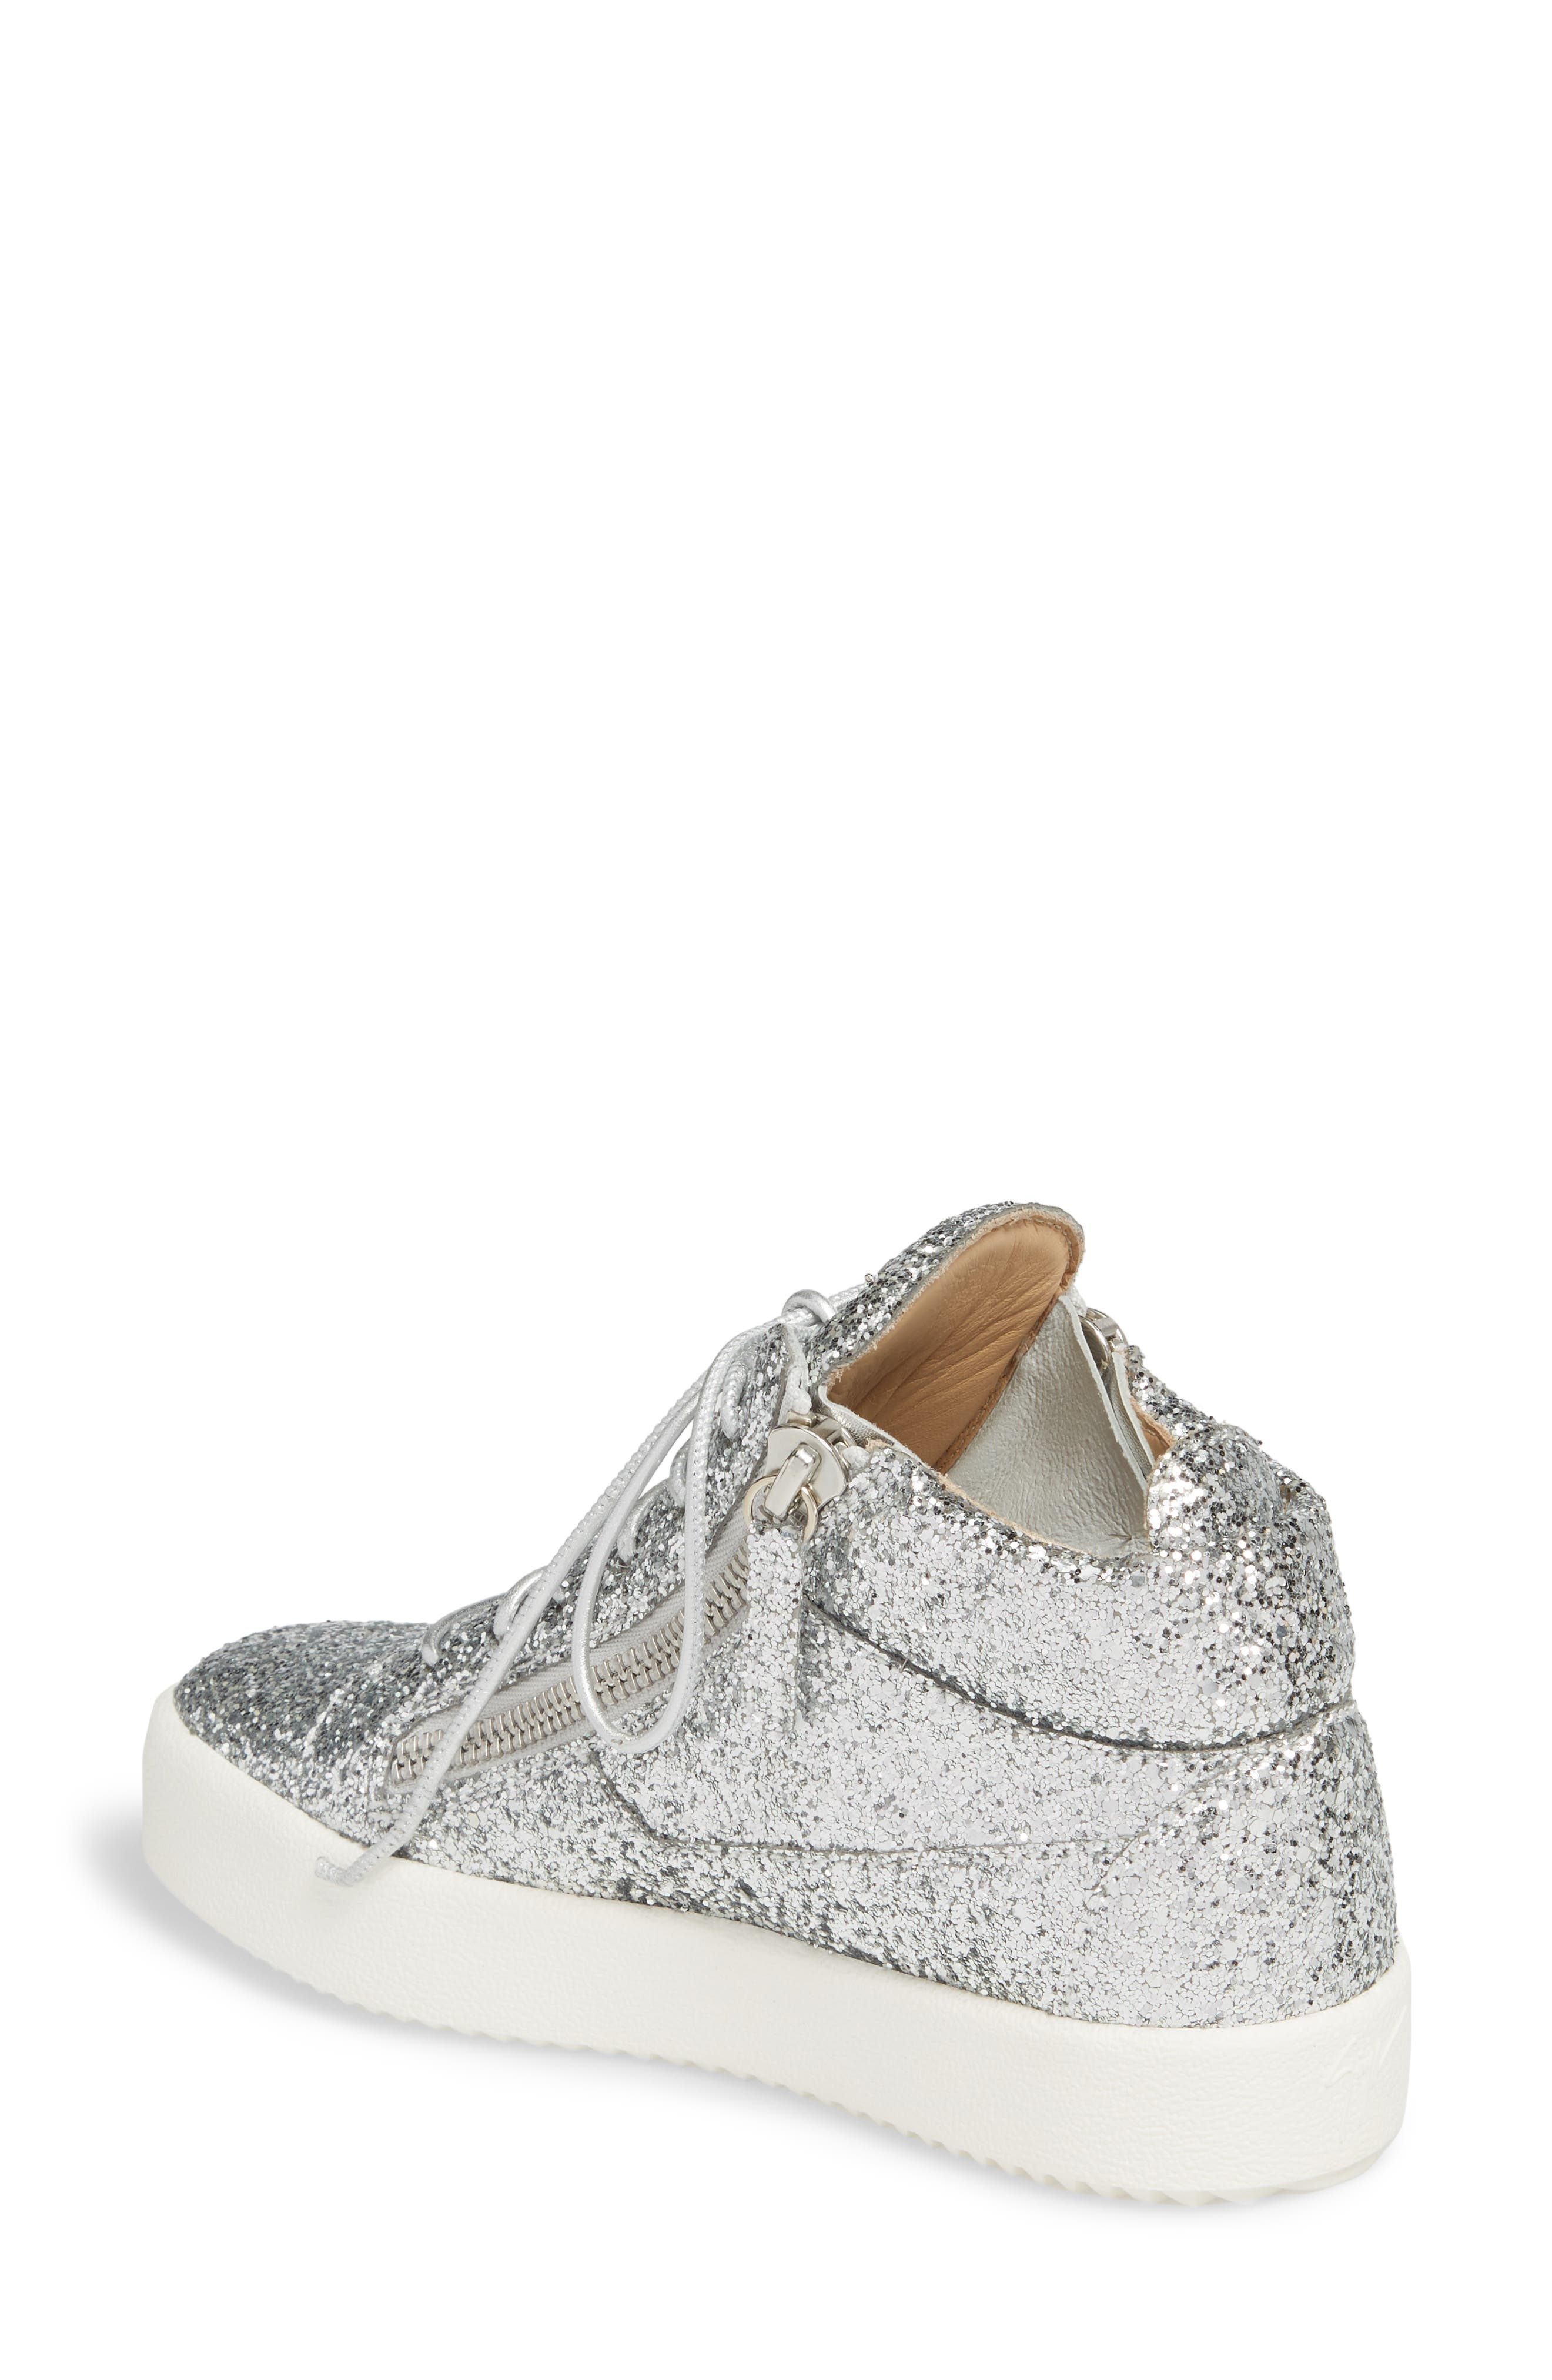 May London High Top Sneaker,                             Alternate thumbnail 2, color,                             SILVER